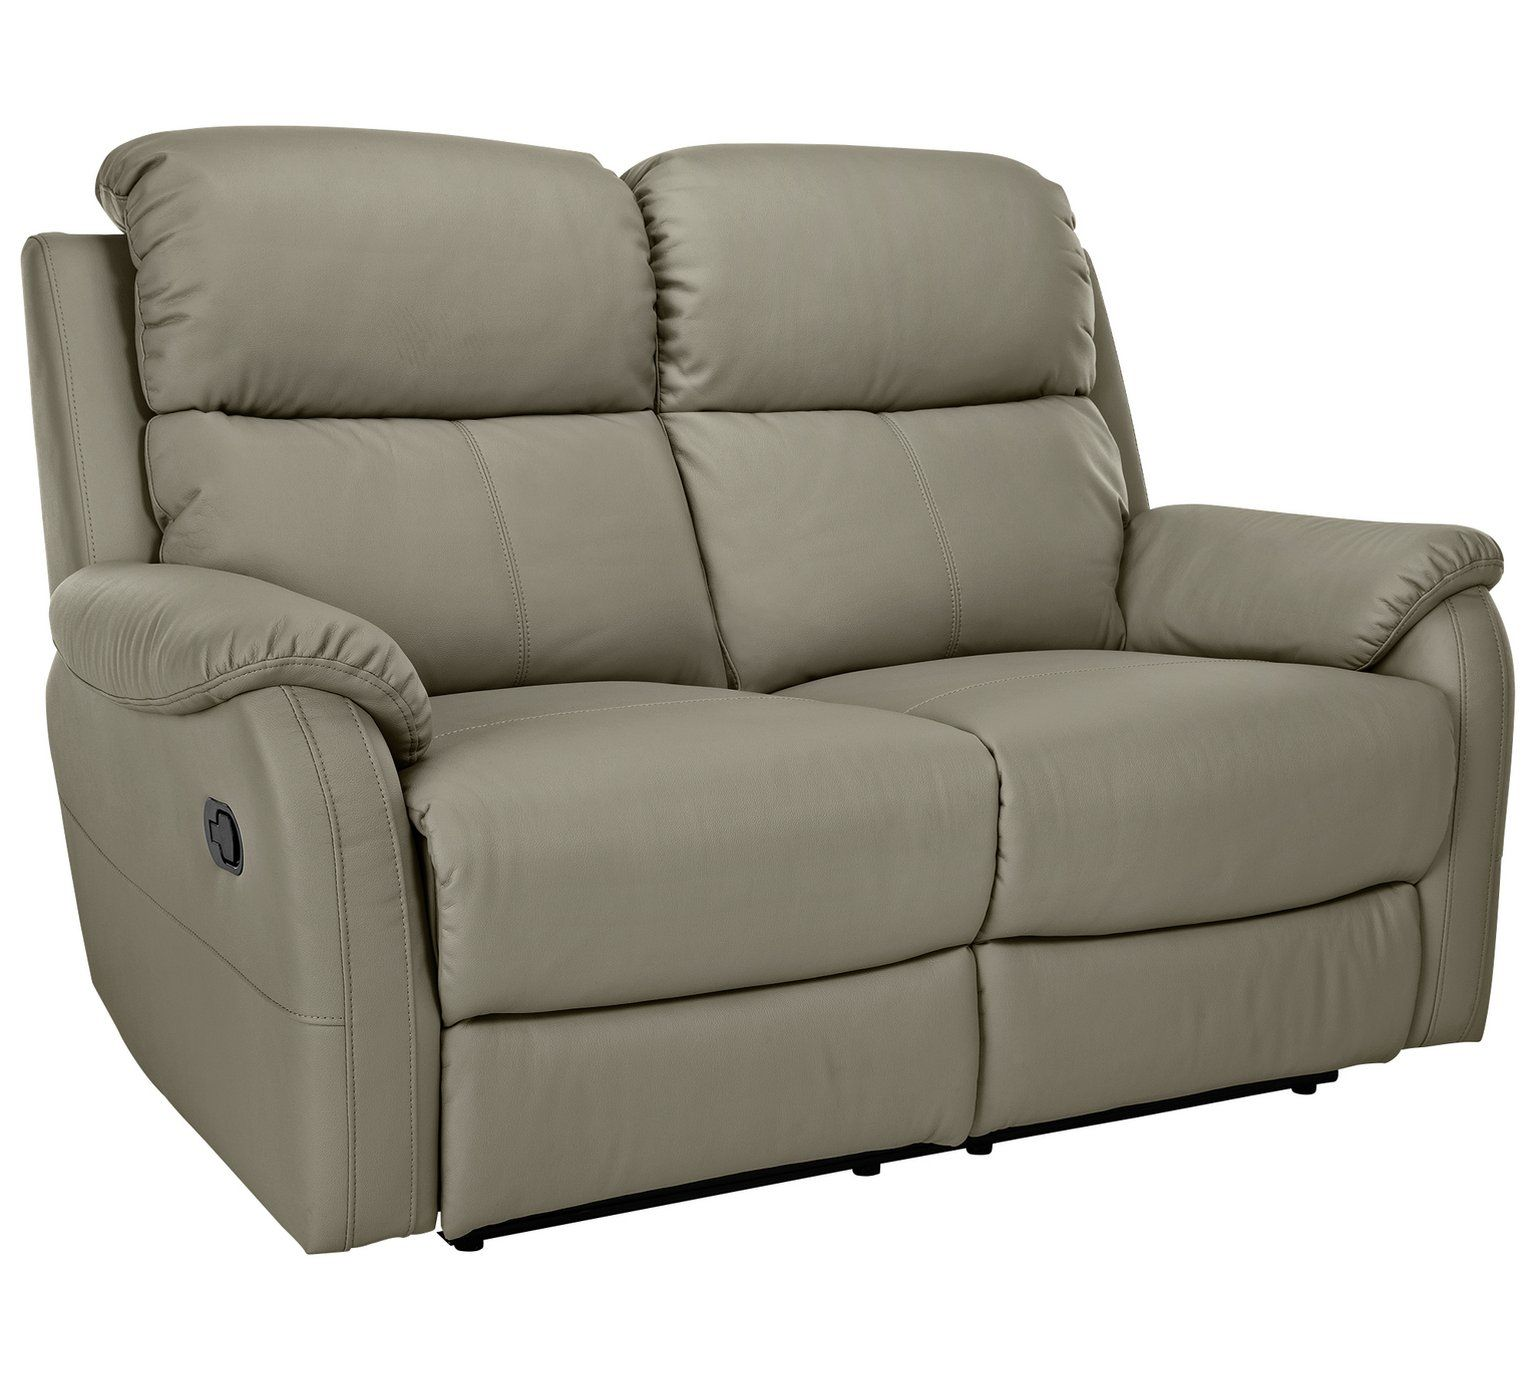 Buy HOME Tyler 2 Seater Manual Recliner Sofa Grey at